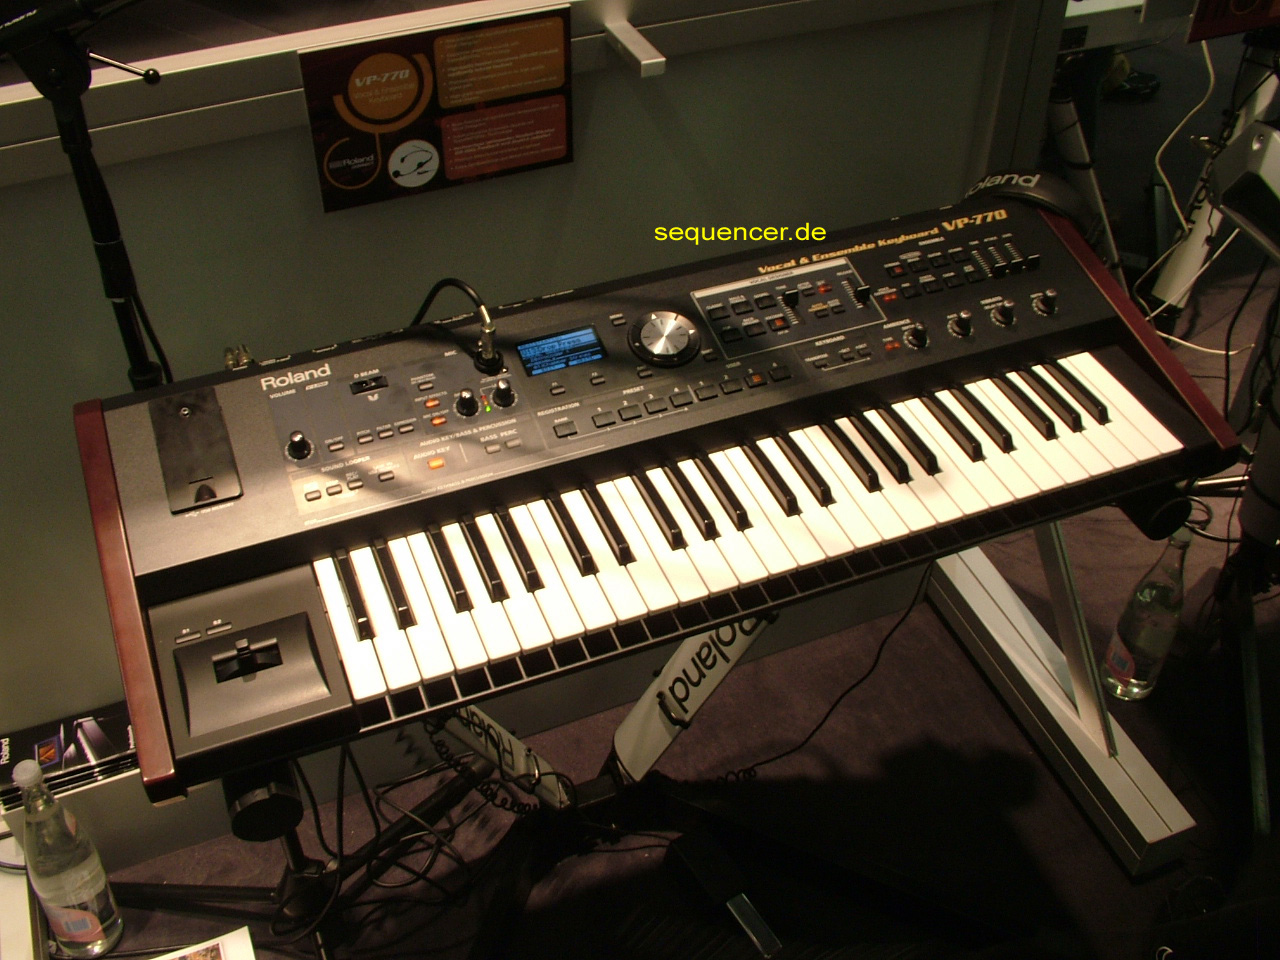 Roland VP770 synthesizer